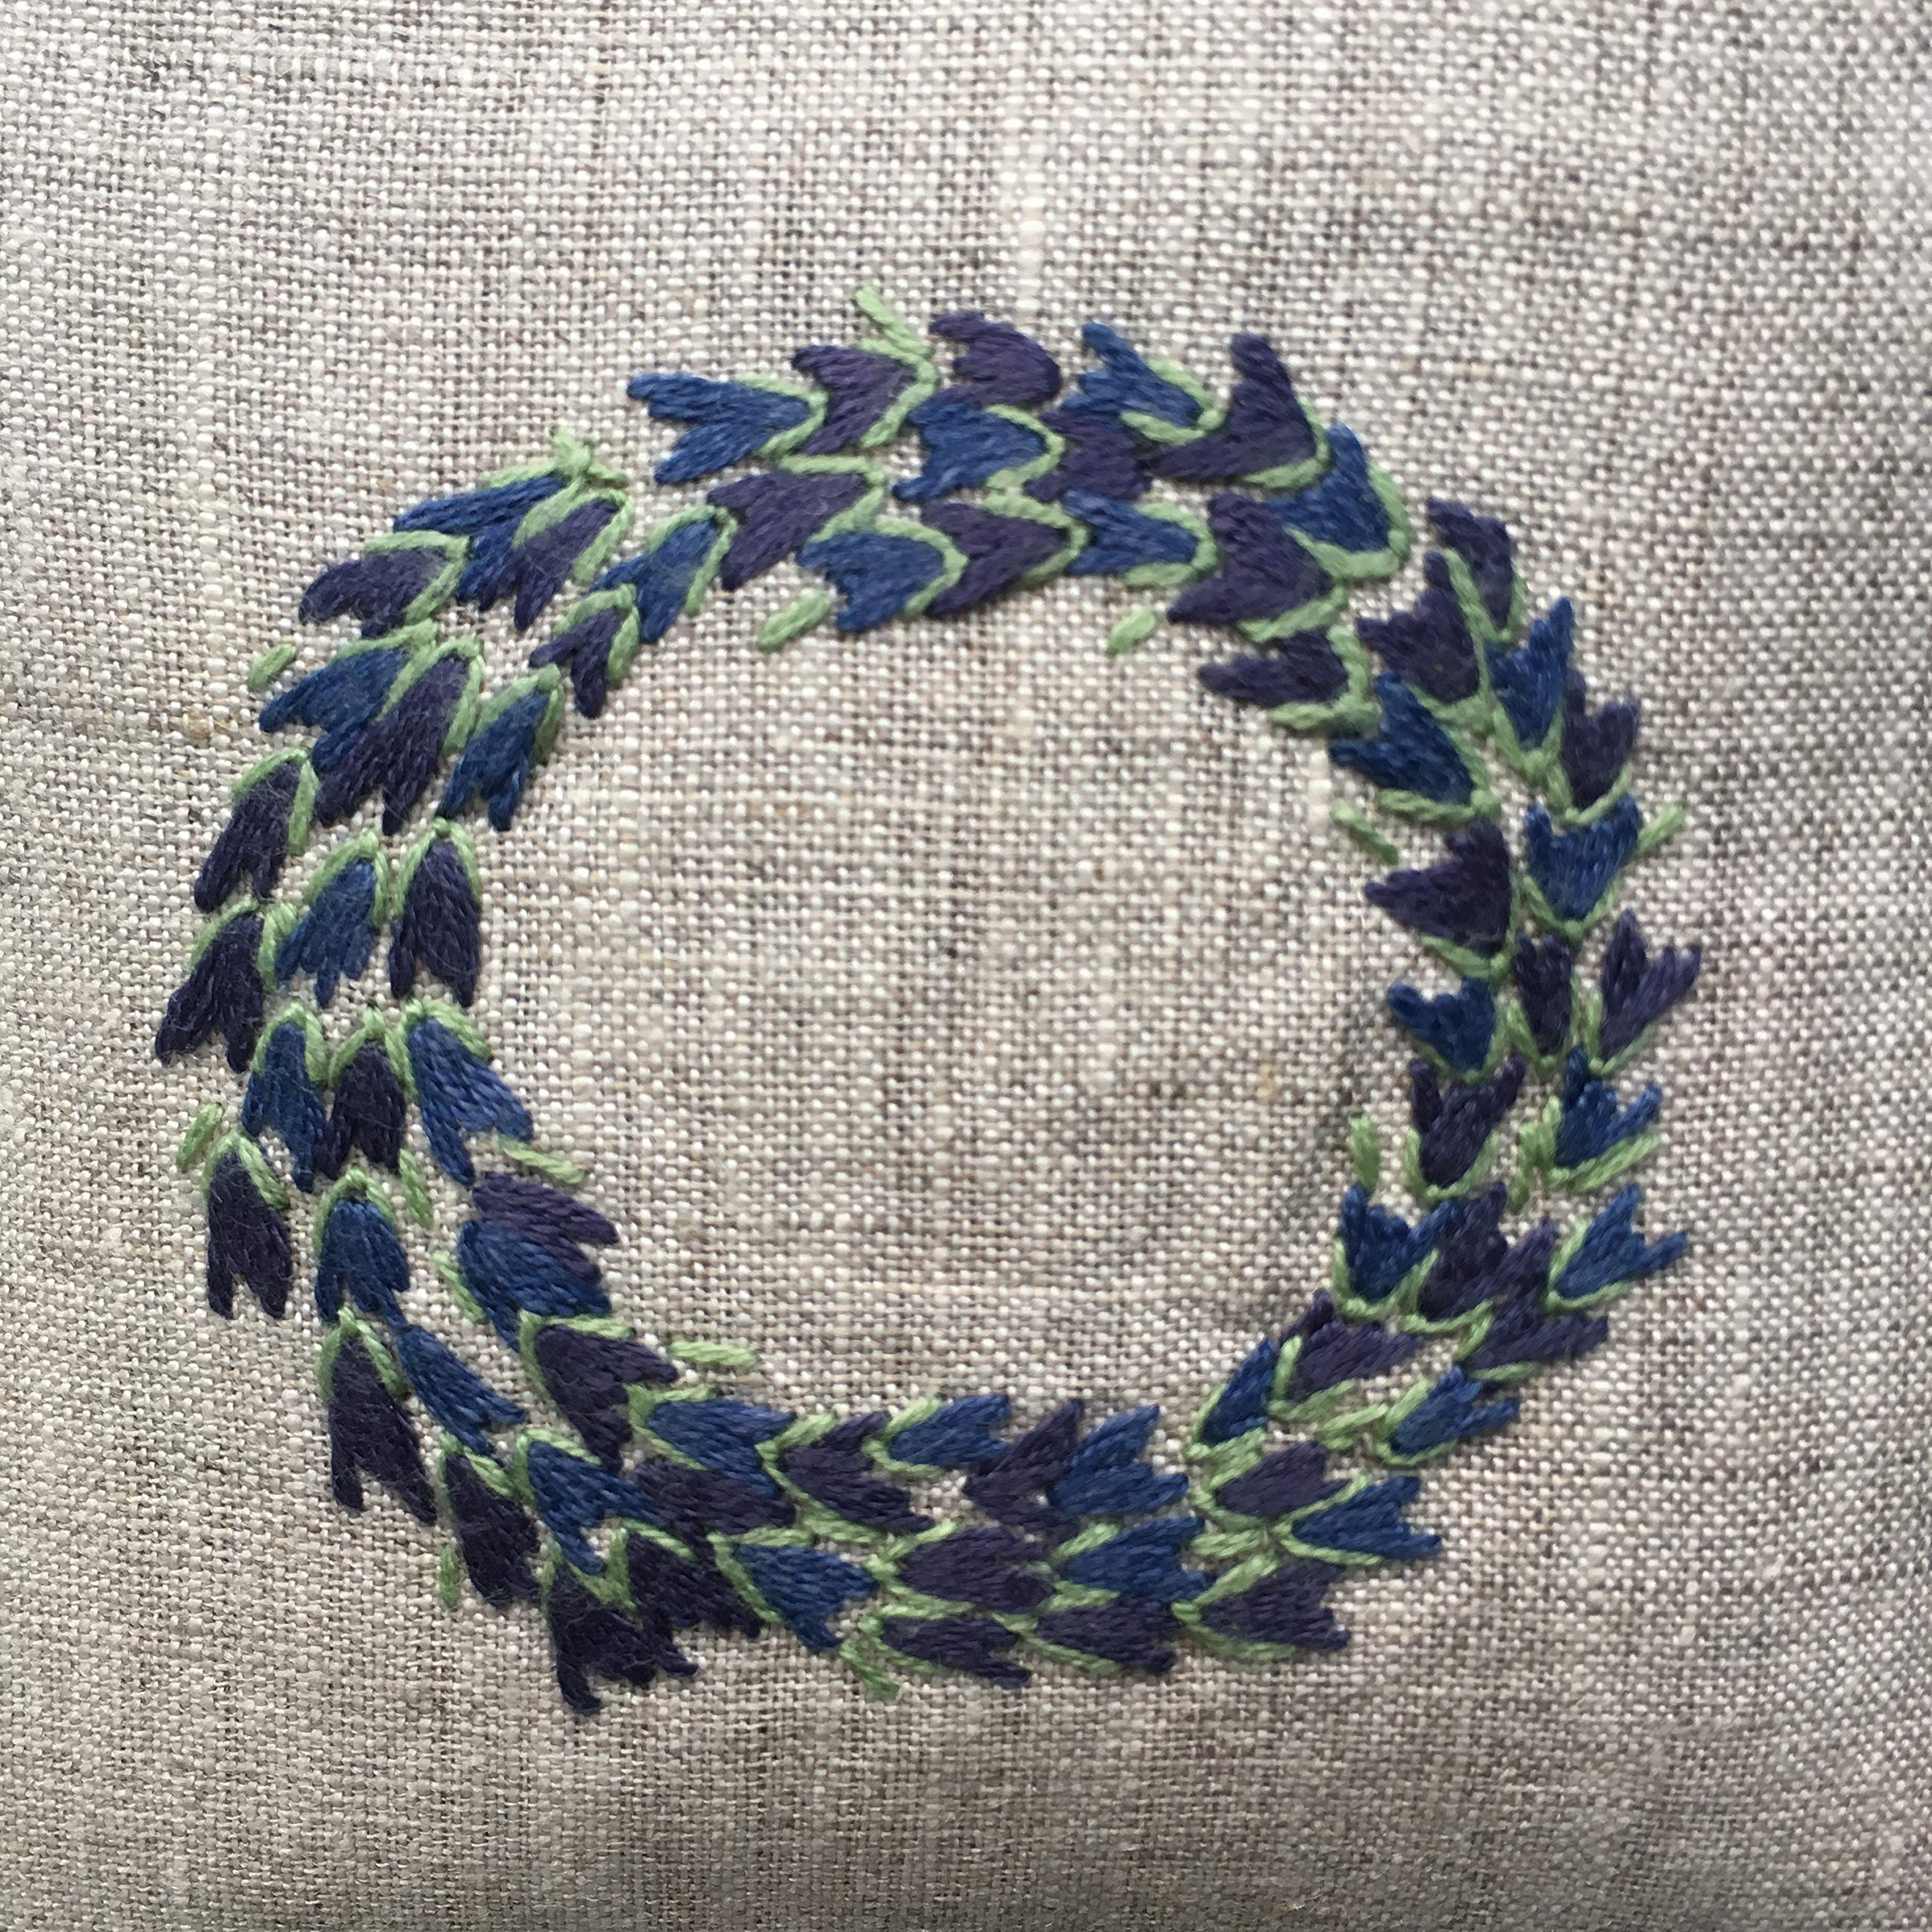 Hand Embroidered Lavender Pillow Sachet Bag ''Lavender Crown'' Natural Linen Cushion 6''x6'', Set of 3 by Minhcraft (Image #2)